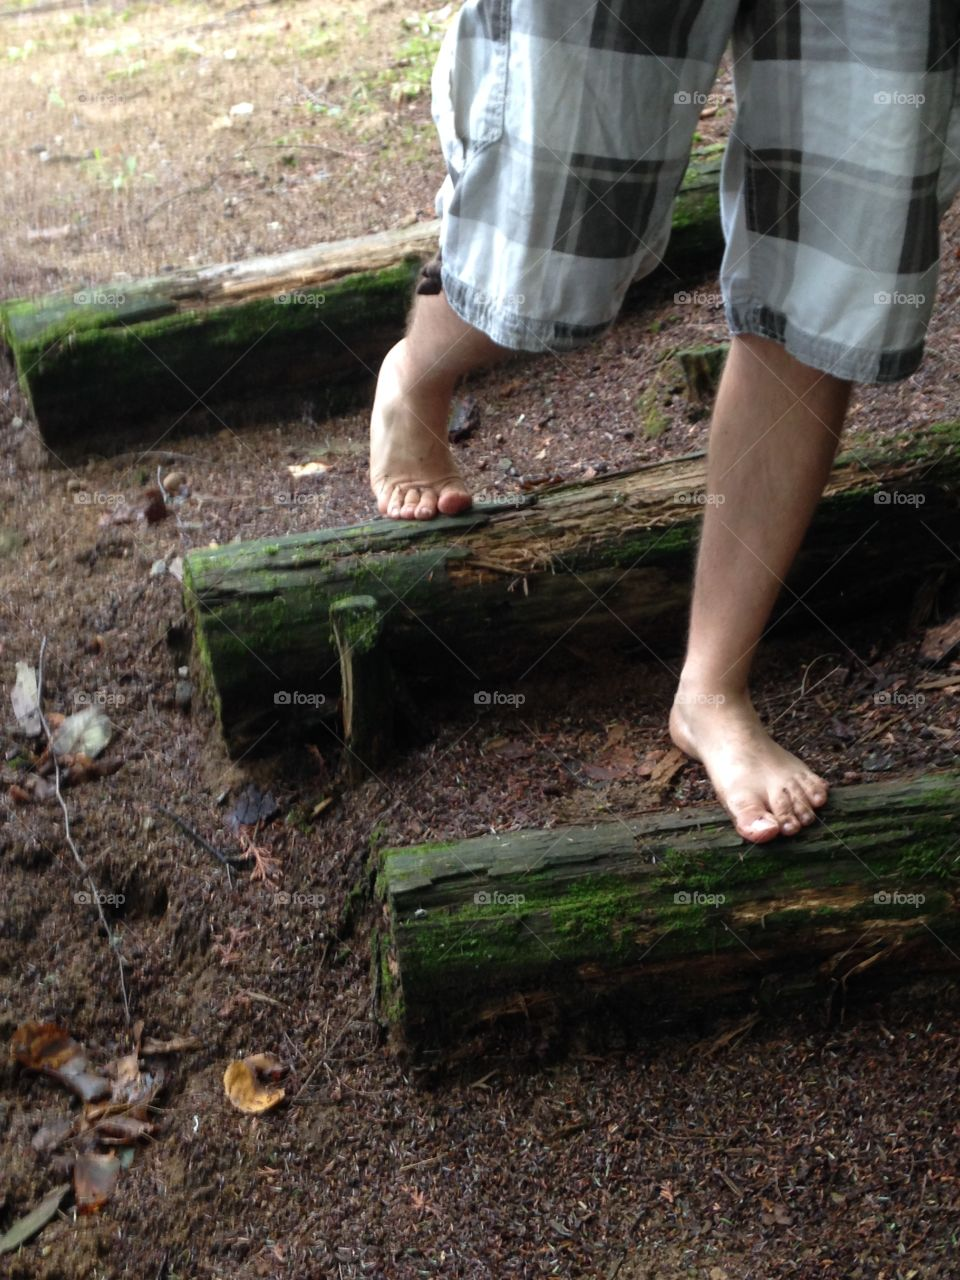 Walking in the woods barefoot